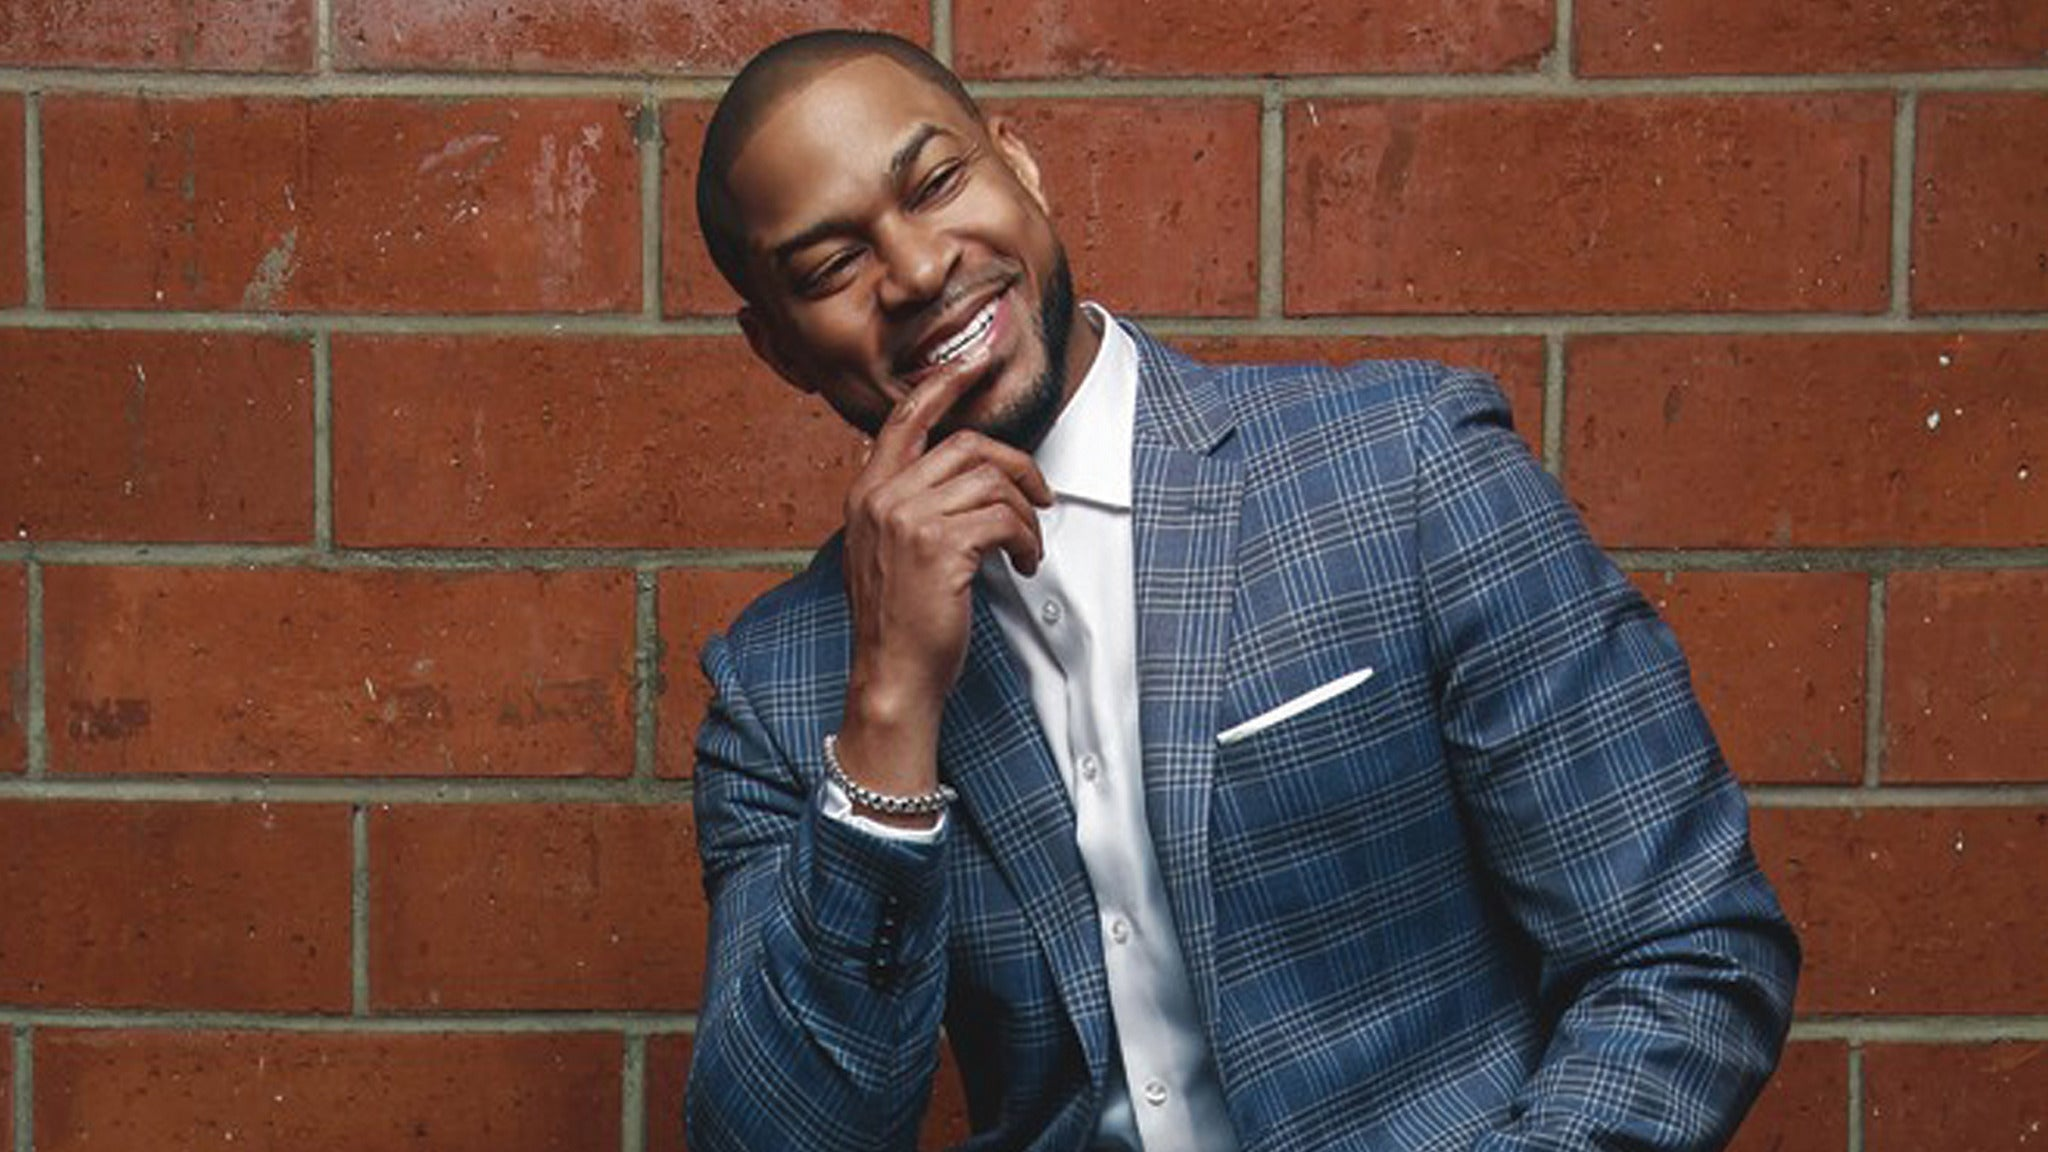 Finesse Mitchell at Brea Improv - Brea, CA 92821